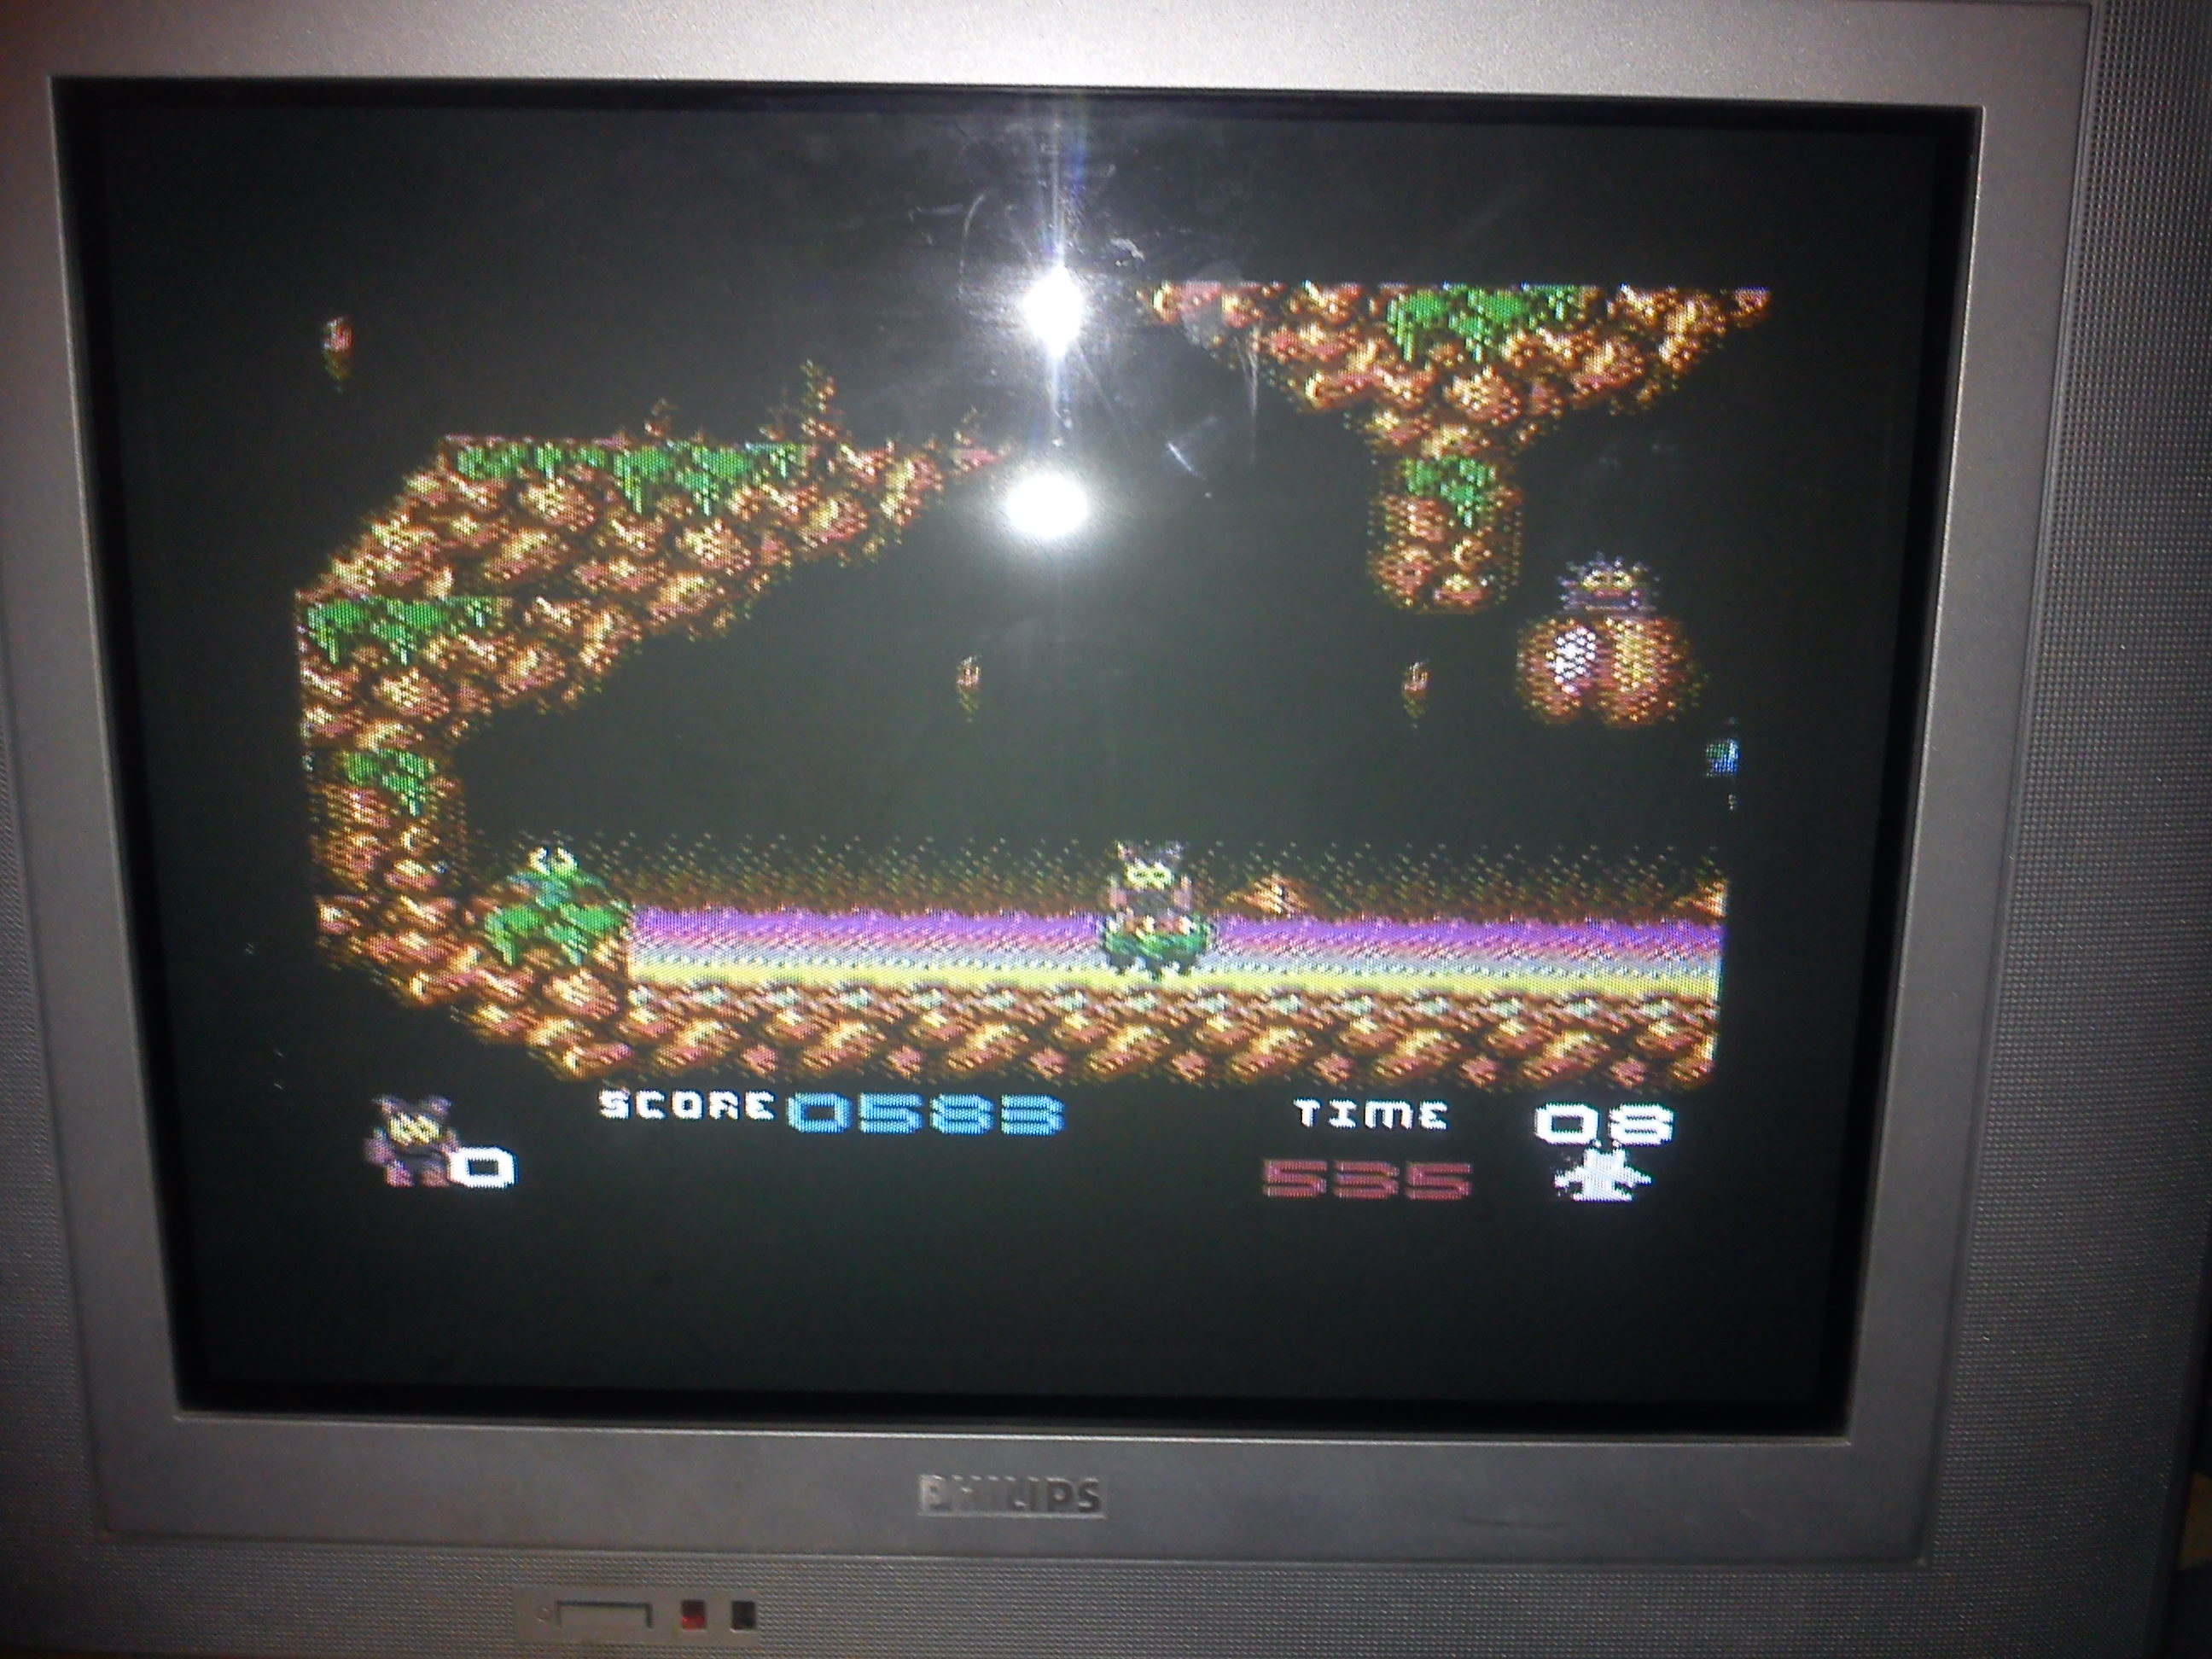 Fr0st: Creatures (Commodore 64) 583 points on 2014-04-29 17:30:54